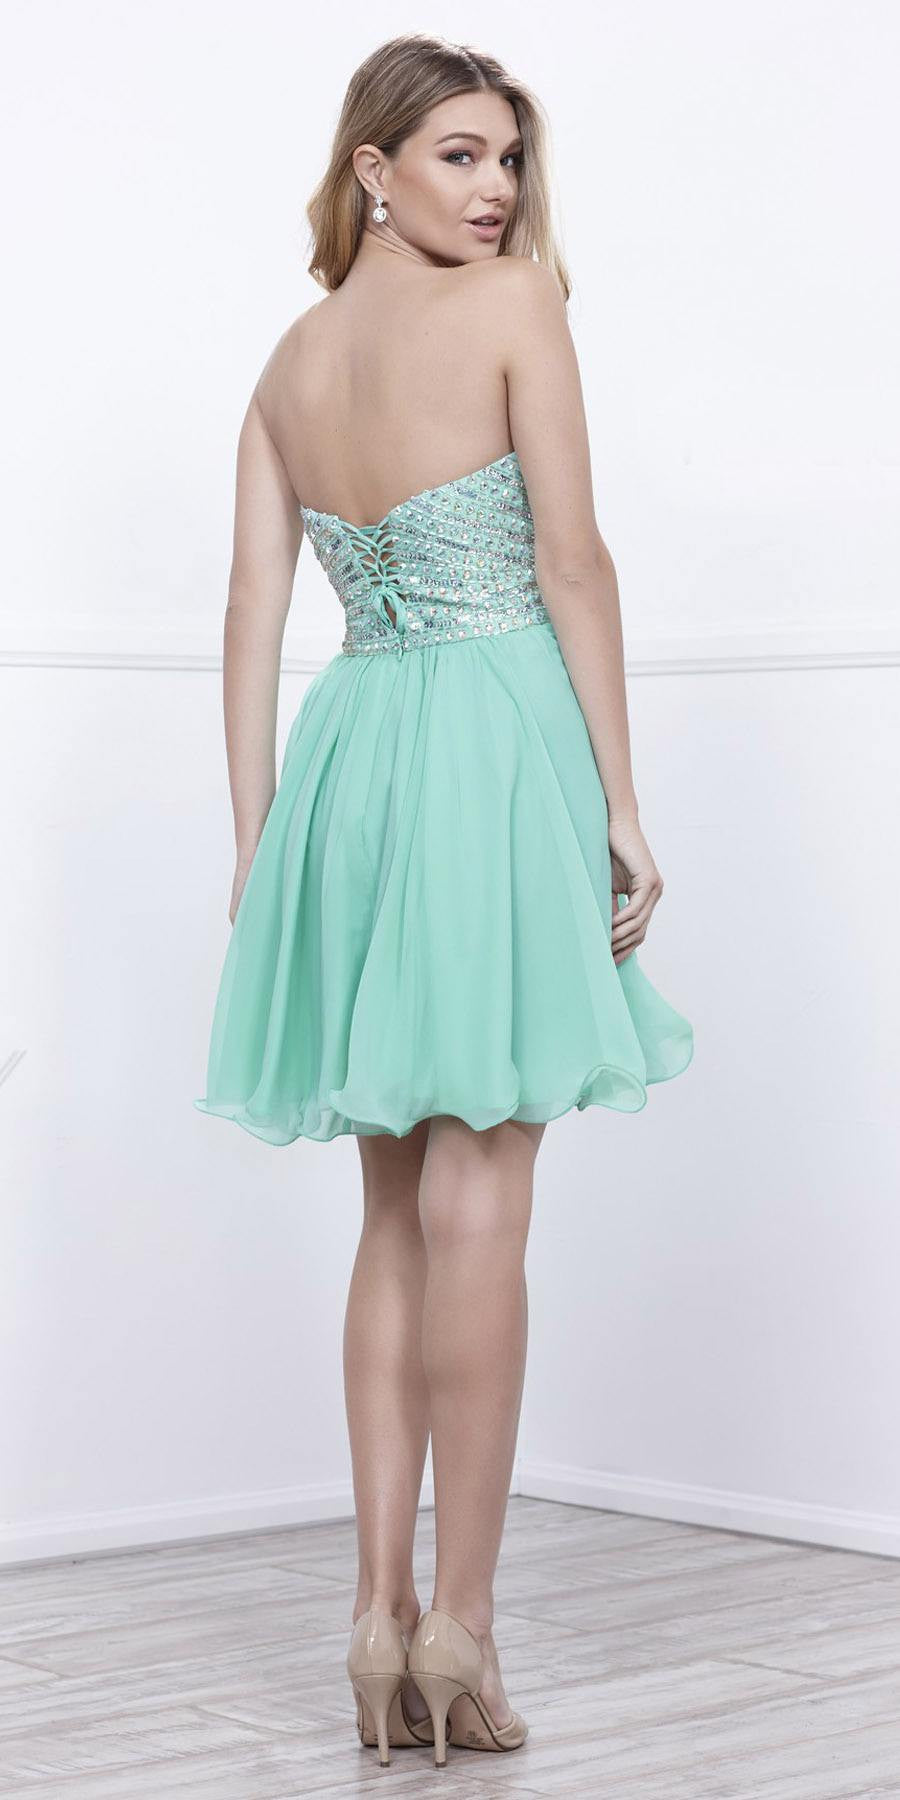 Short Strapless Homecoming Dress Sweetheart Neckline Mint Green ...